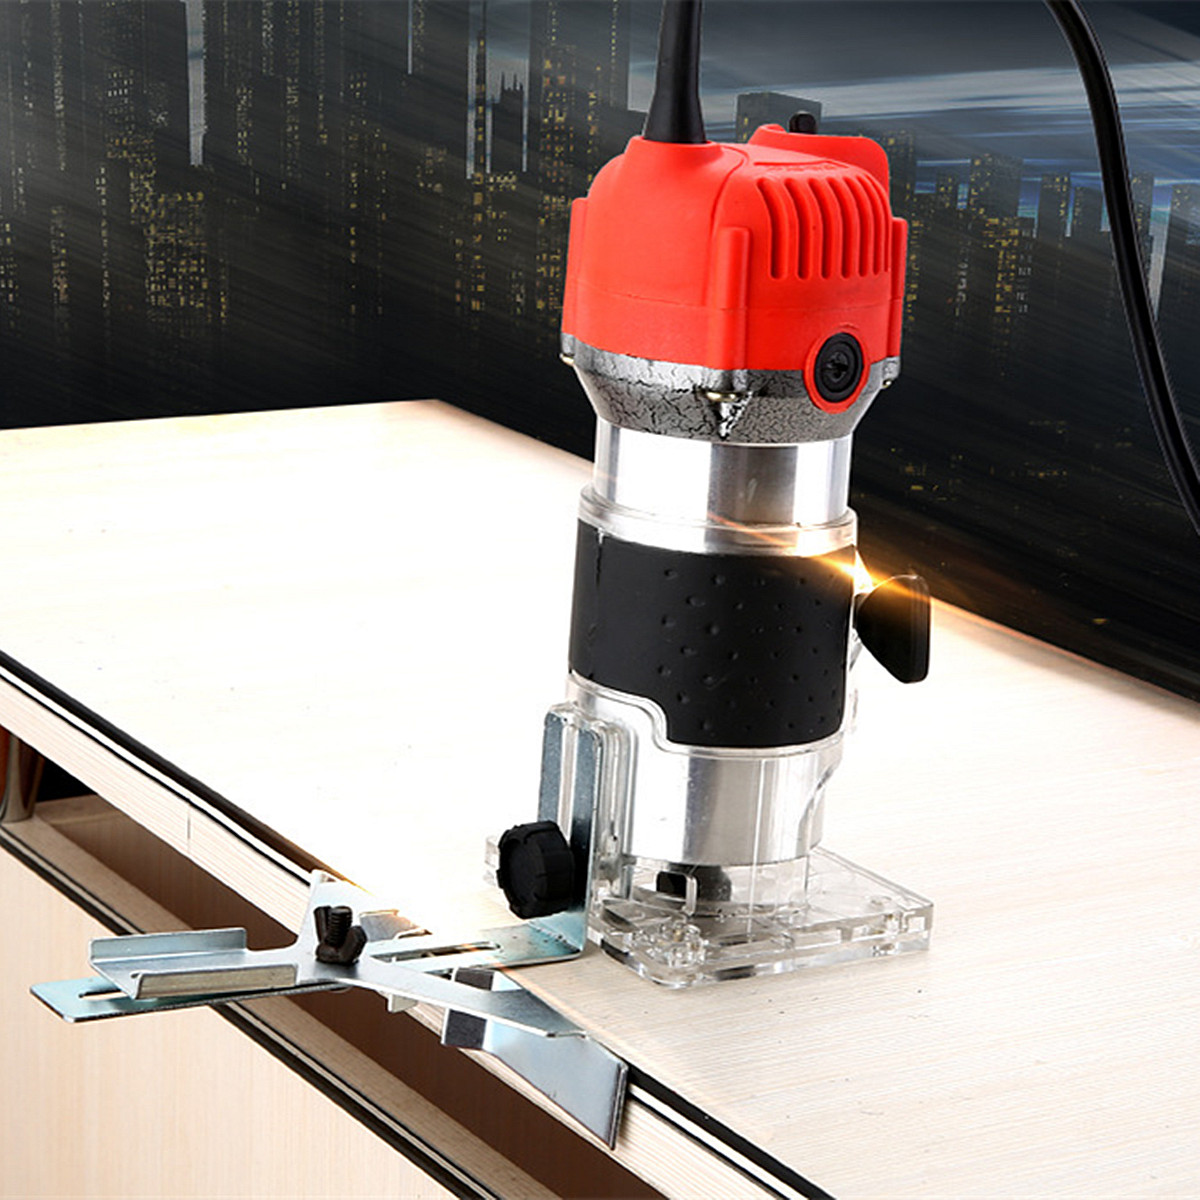 30000r/min Corded Electric Hand Trimmer Wood Laminator Router Joiners Tools 110V 750W 1/4 60HZ External Carbon Brush Lift Knob30000r/min Corded Electric Hand Trimmer Wood Laminator Router Joiners Tools 110V 750W 1/4 60HZ External Carbon Brush Lift Knob